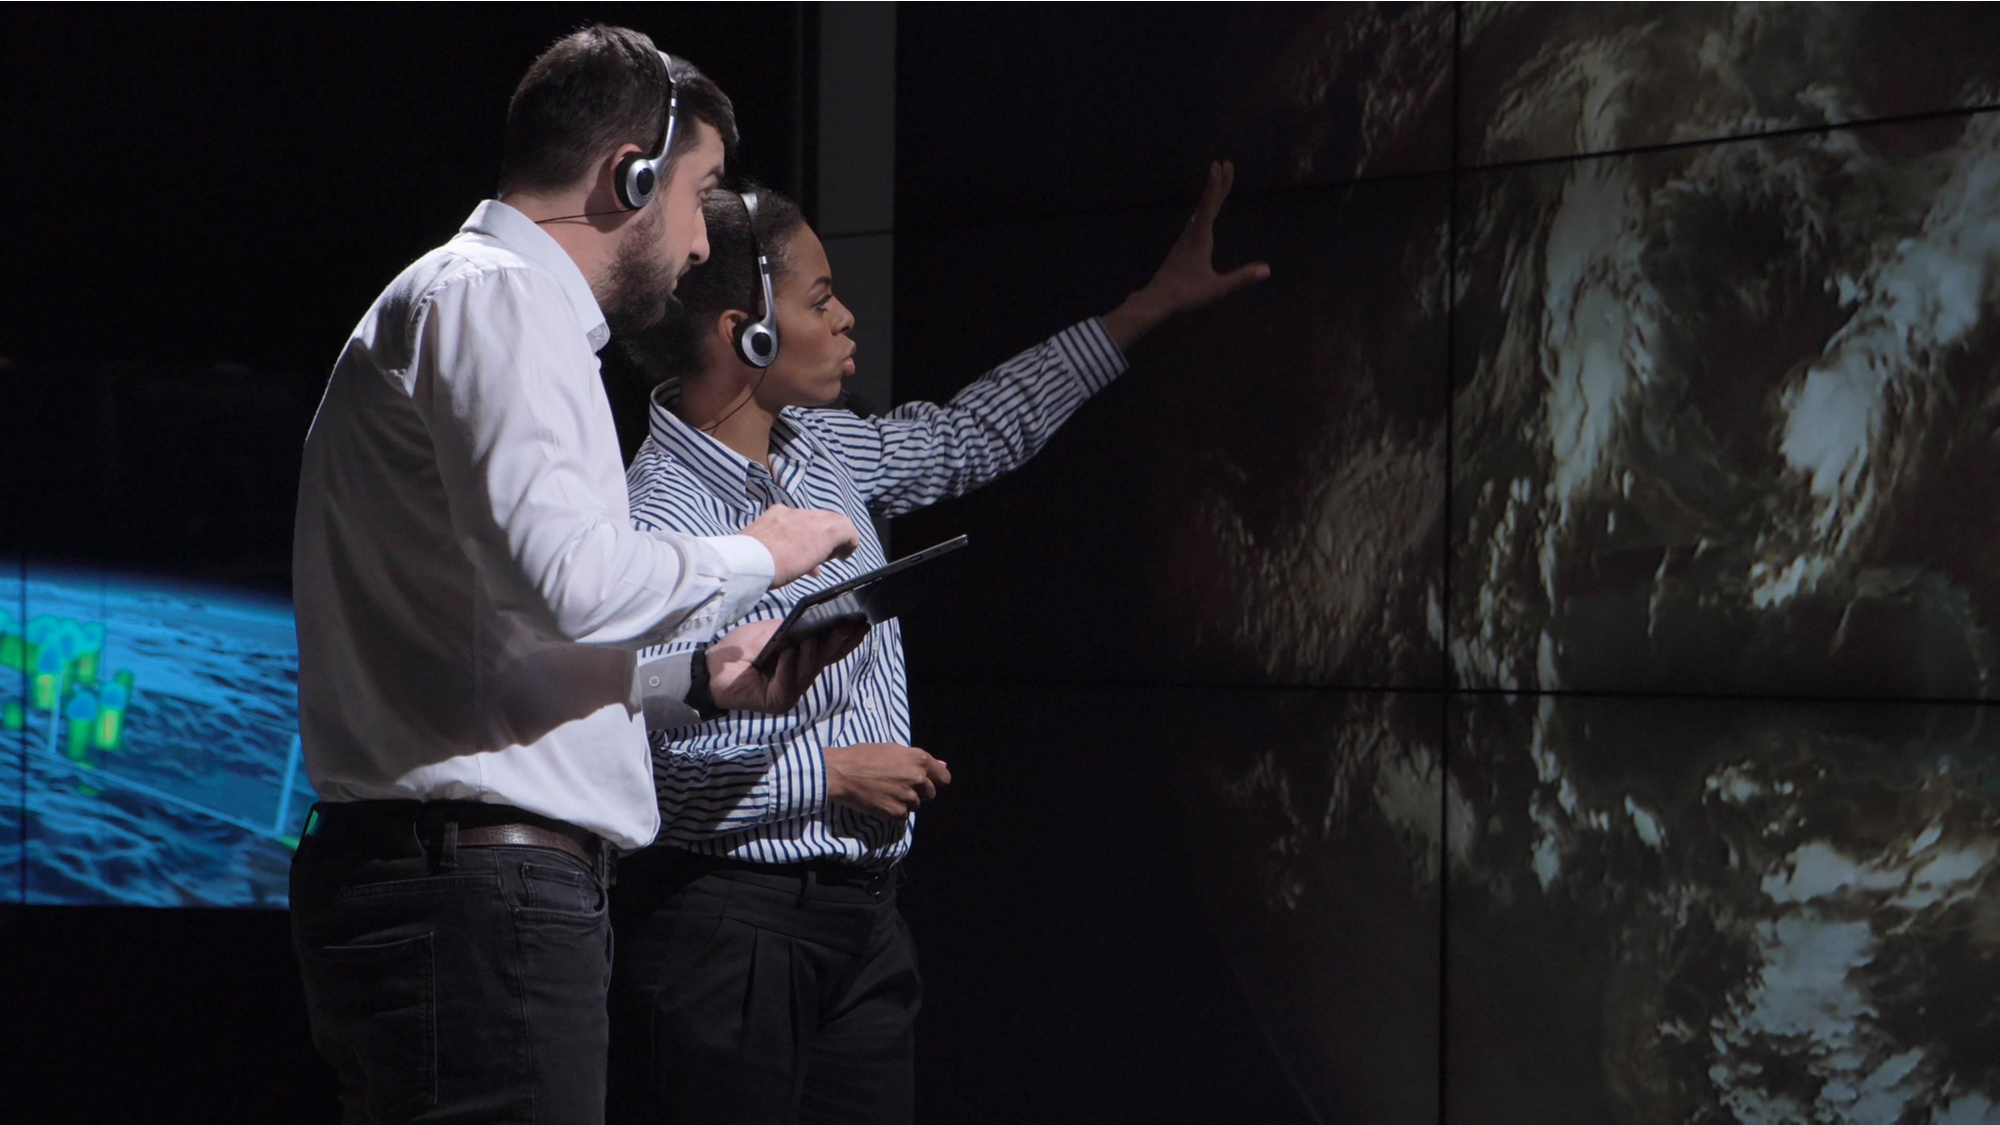 Scientists observe a map